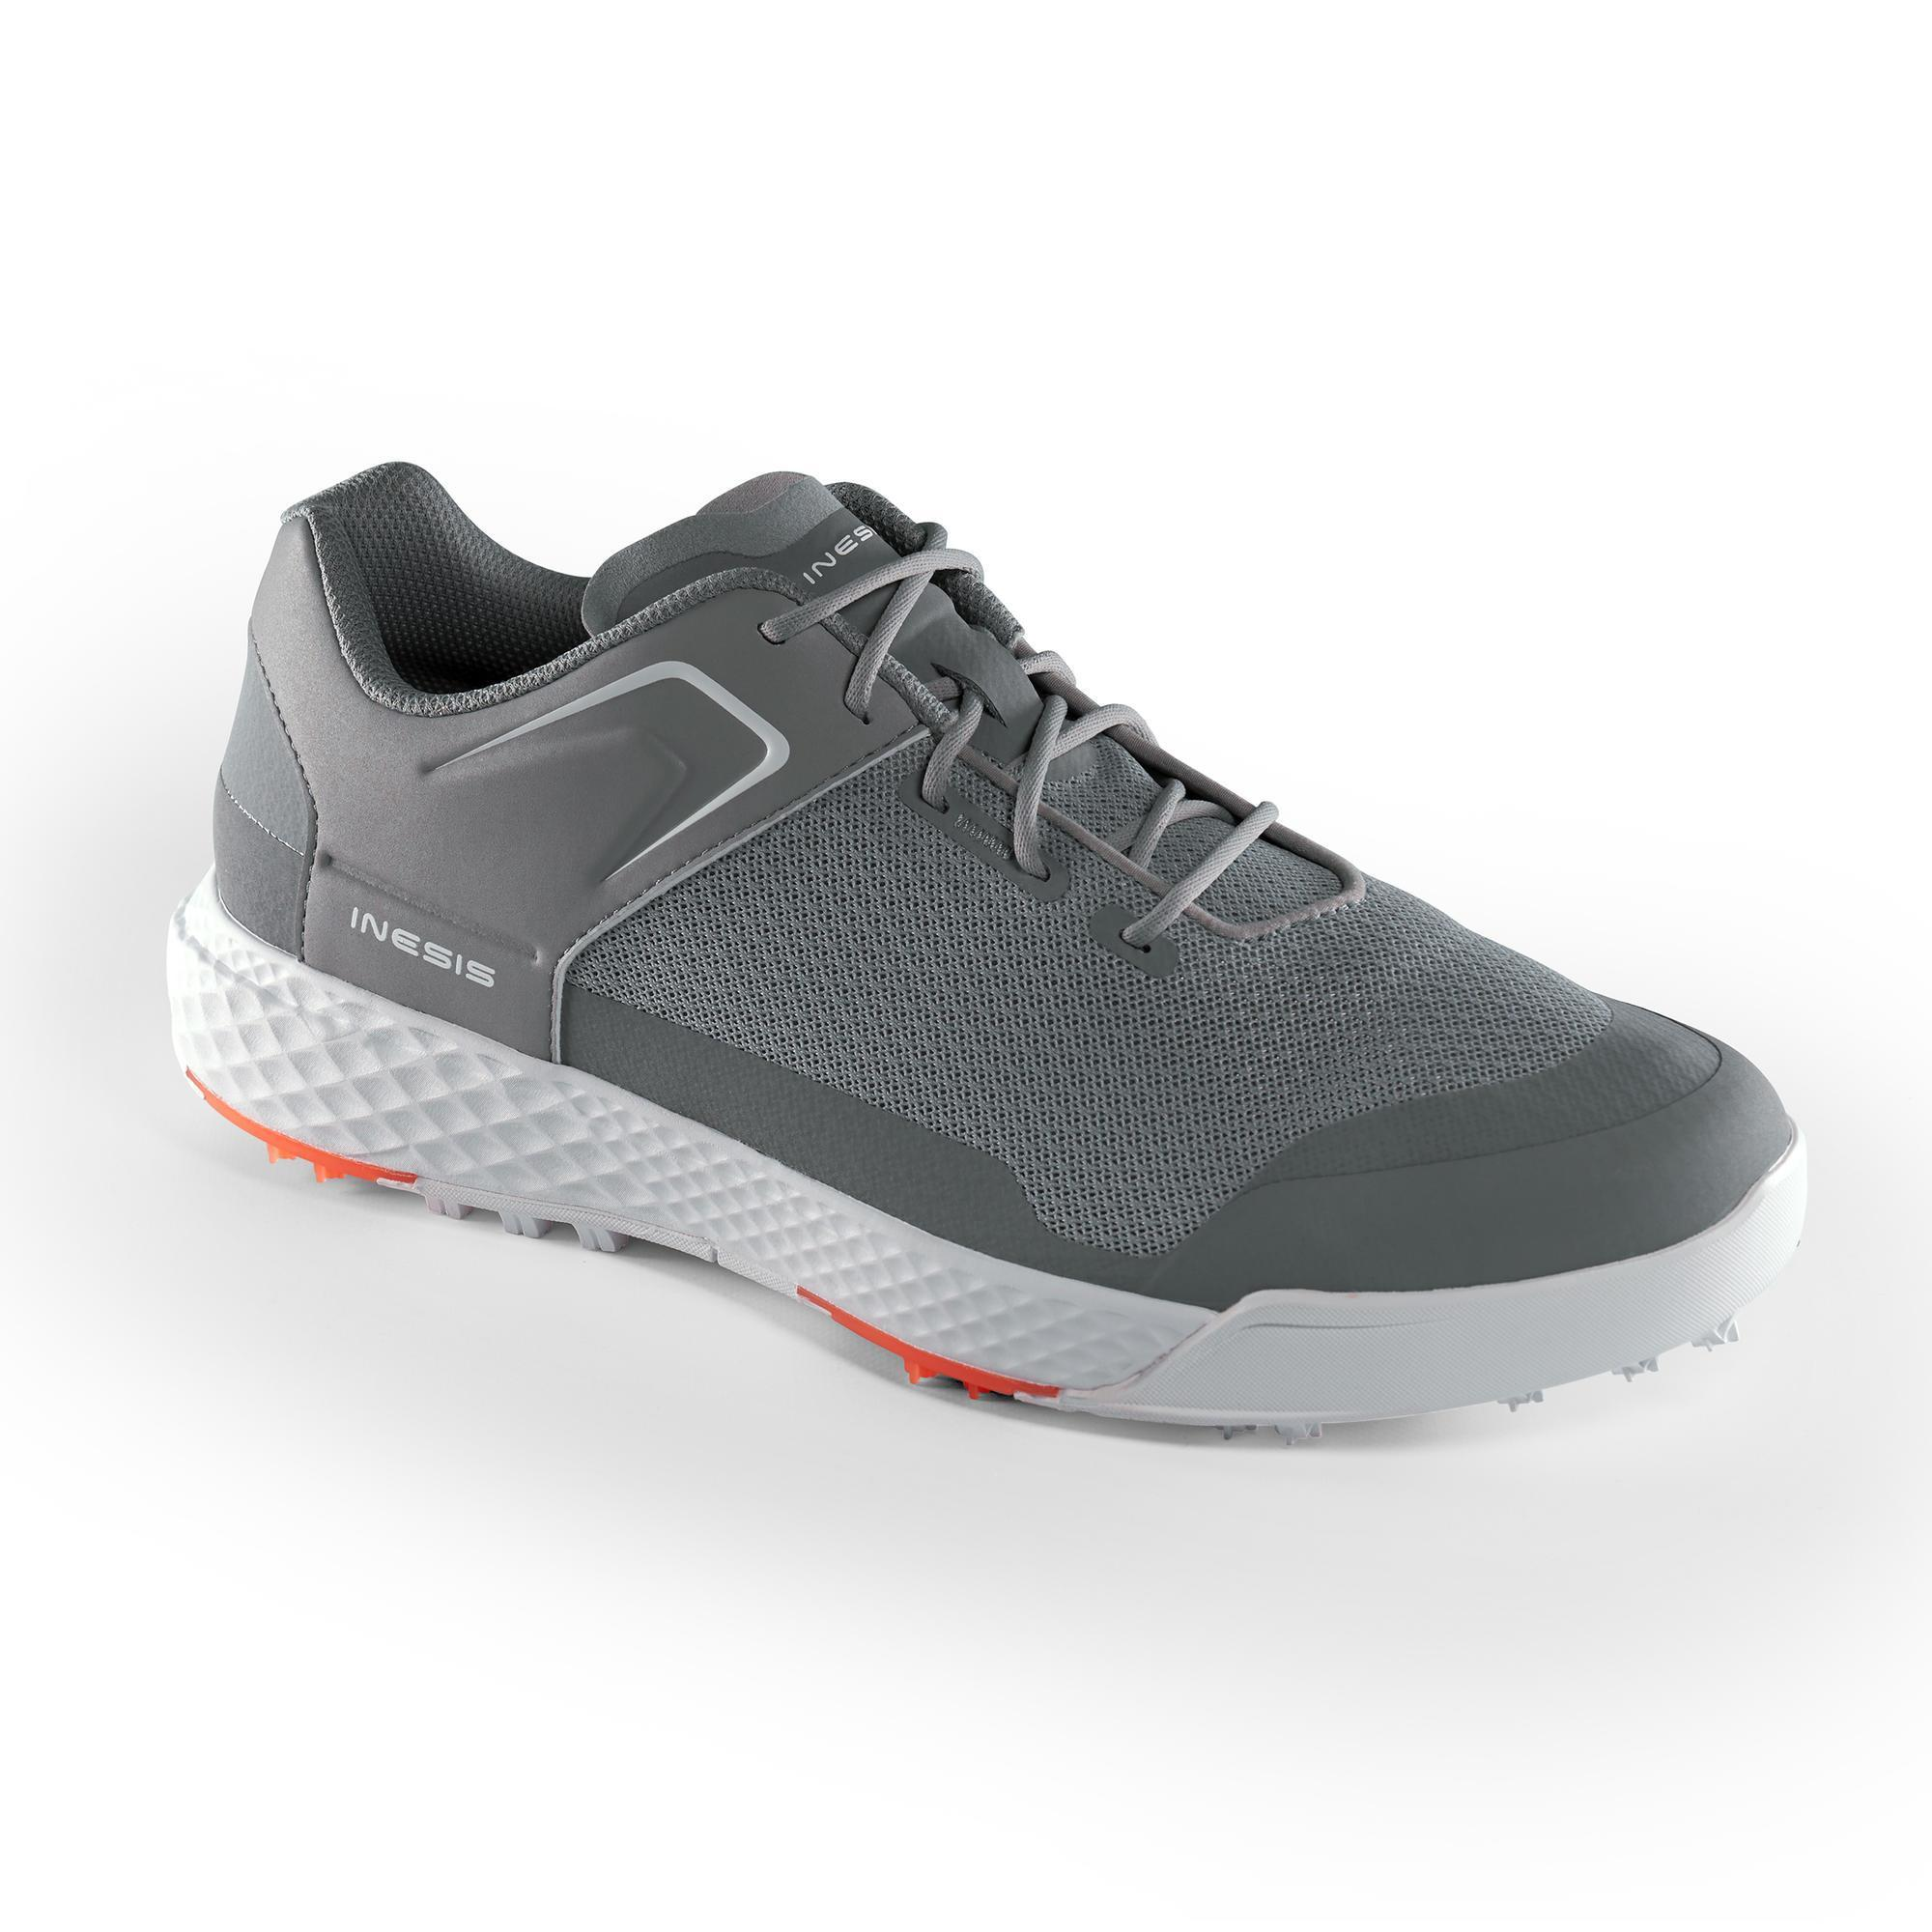 CHAUSSURES GOLF HOMME GRIP DRY GRISES - Inesis